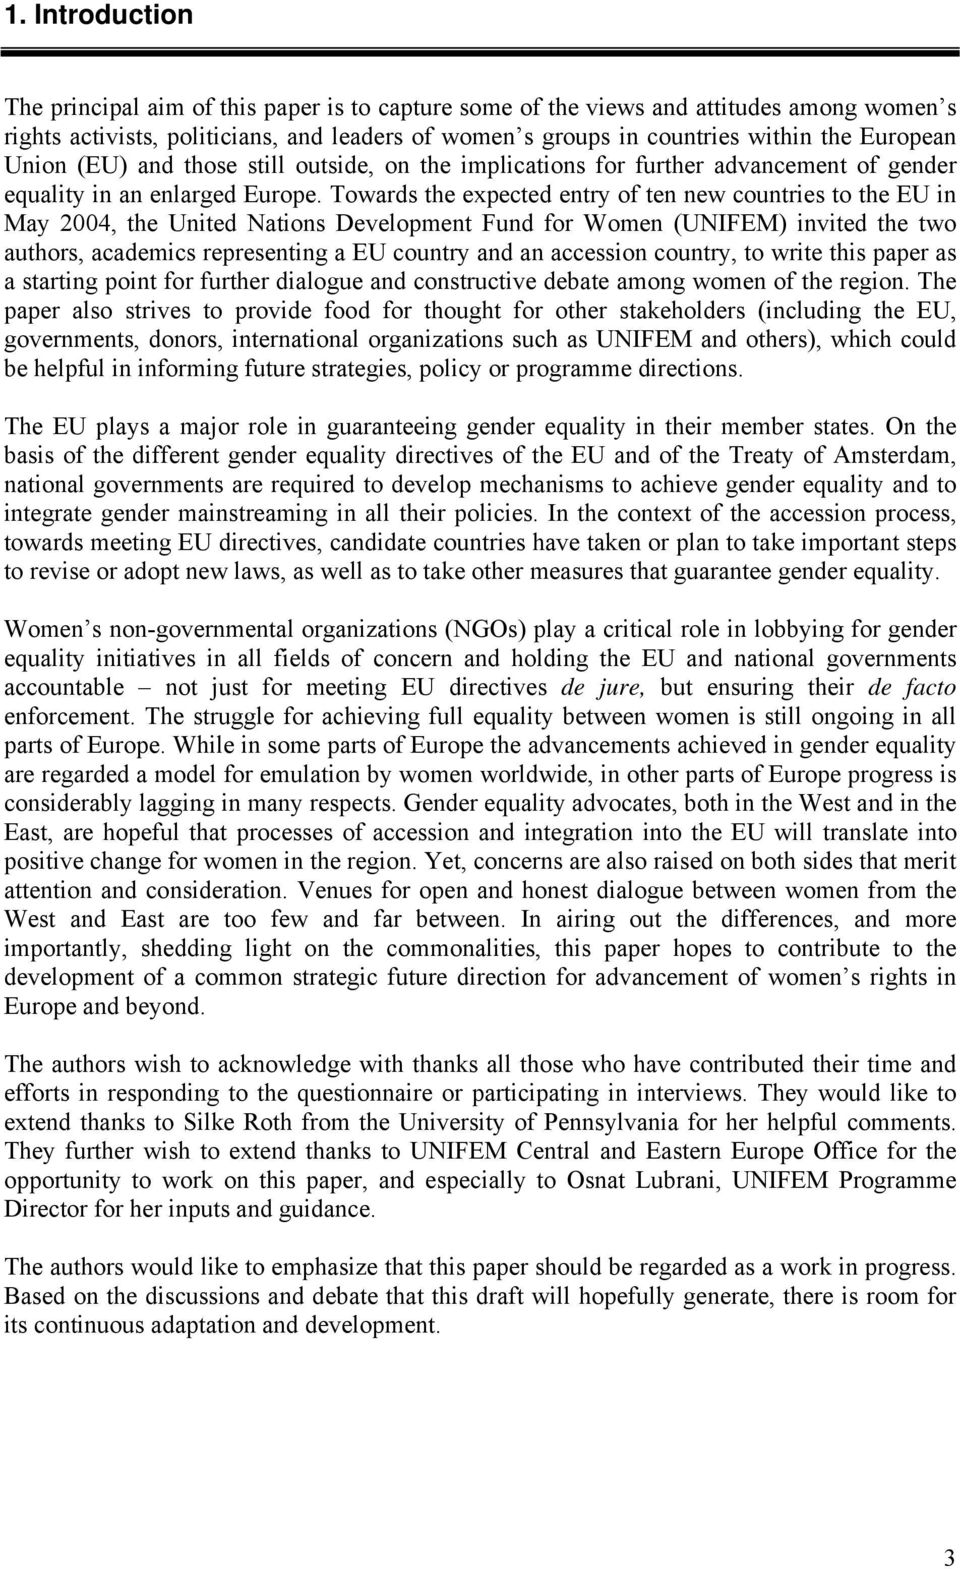 Towards the expected entry of ten new countries to the EU in May 2004, the United Nations Development Fund for Women (UNIFEM) invited the two authors, academics representing a EU country and an